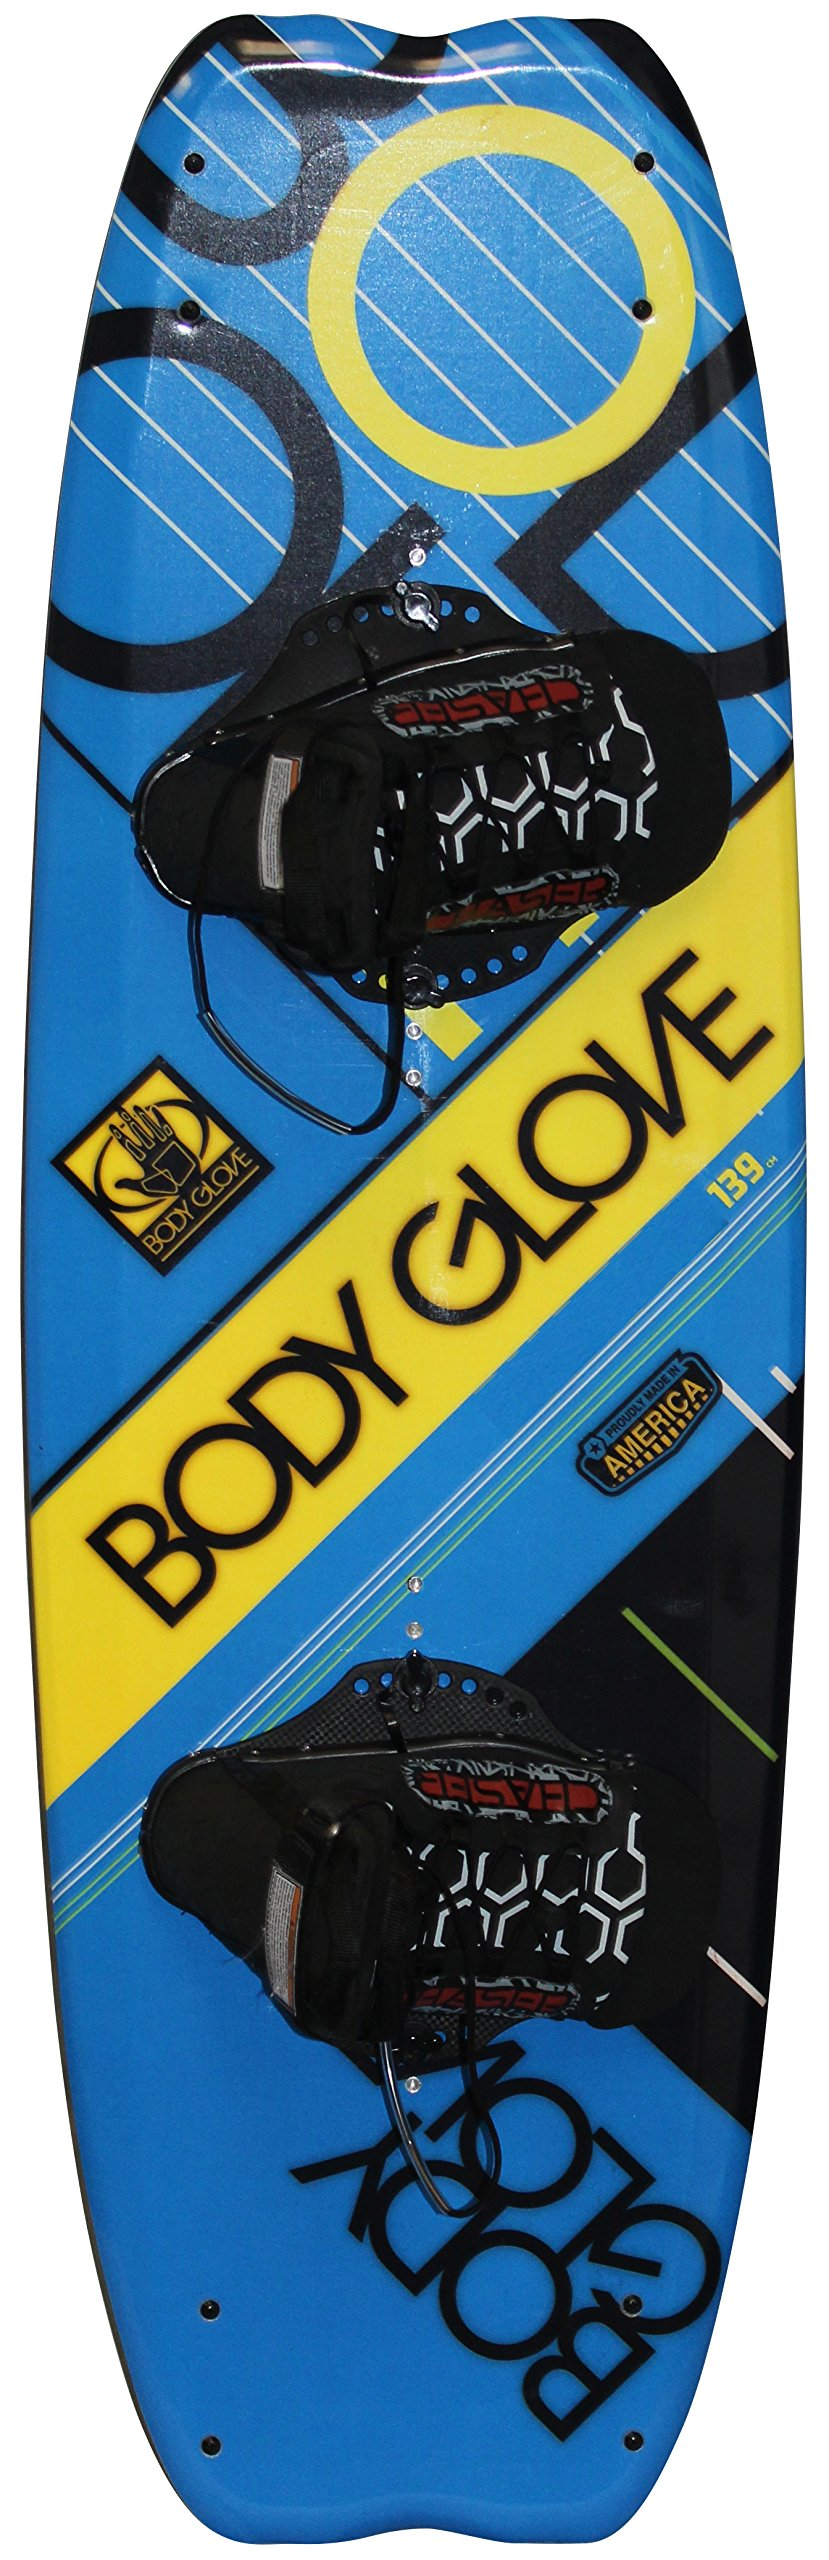 Body Glove Adult Concept Wakeboard, Blue/Yellow, Universal